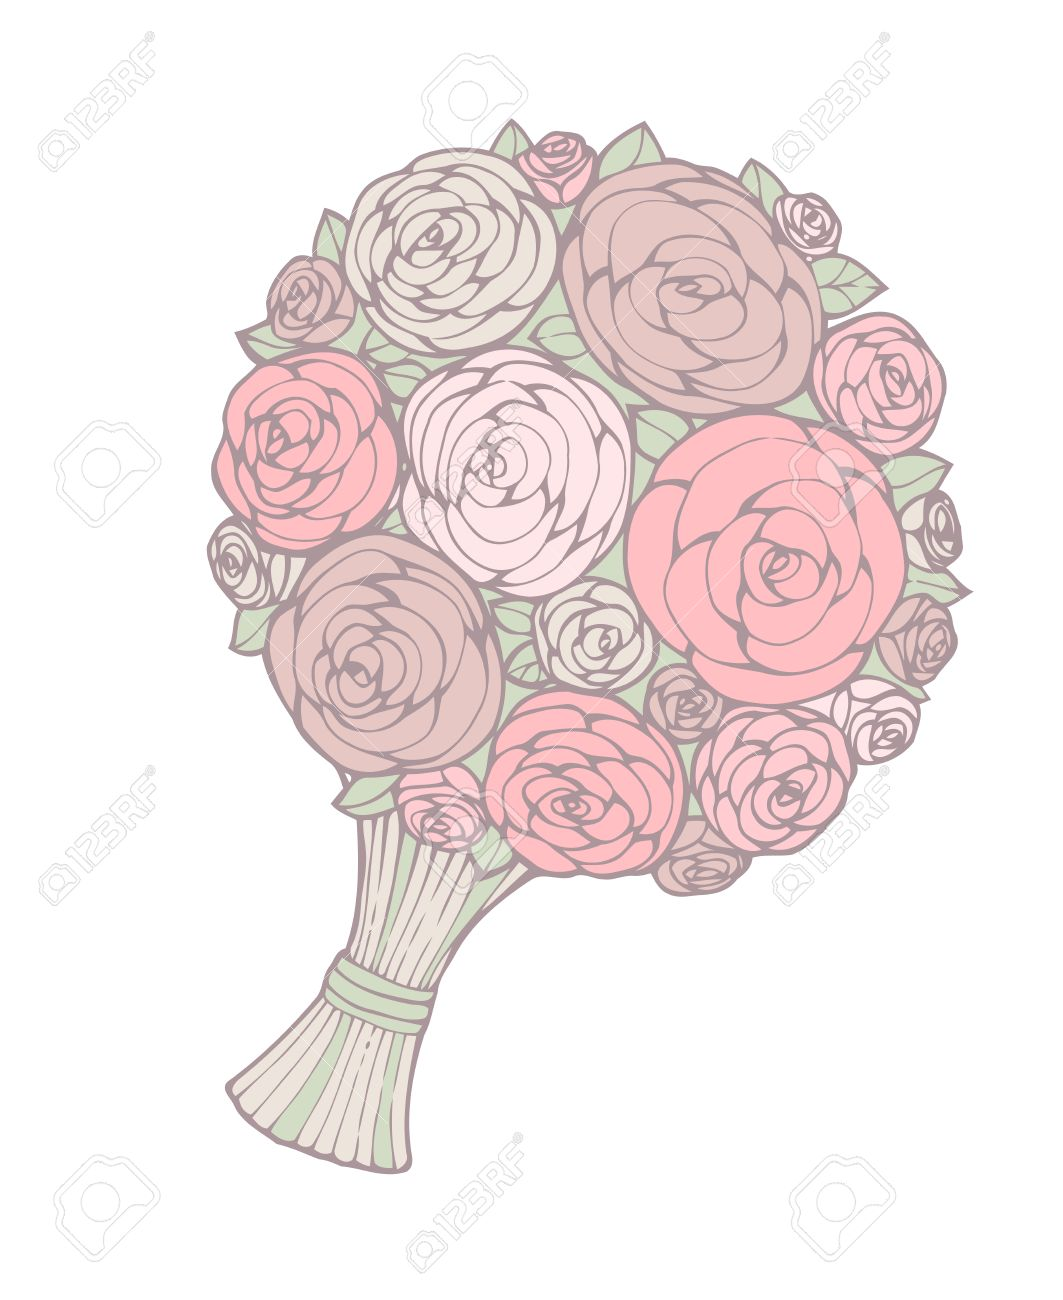 1063x1300 Floral Wedding Bouquet For Your Design, Illustration Royalty Free